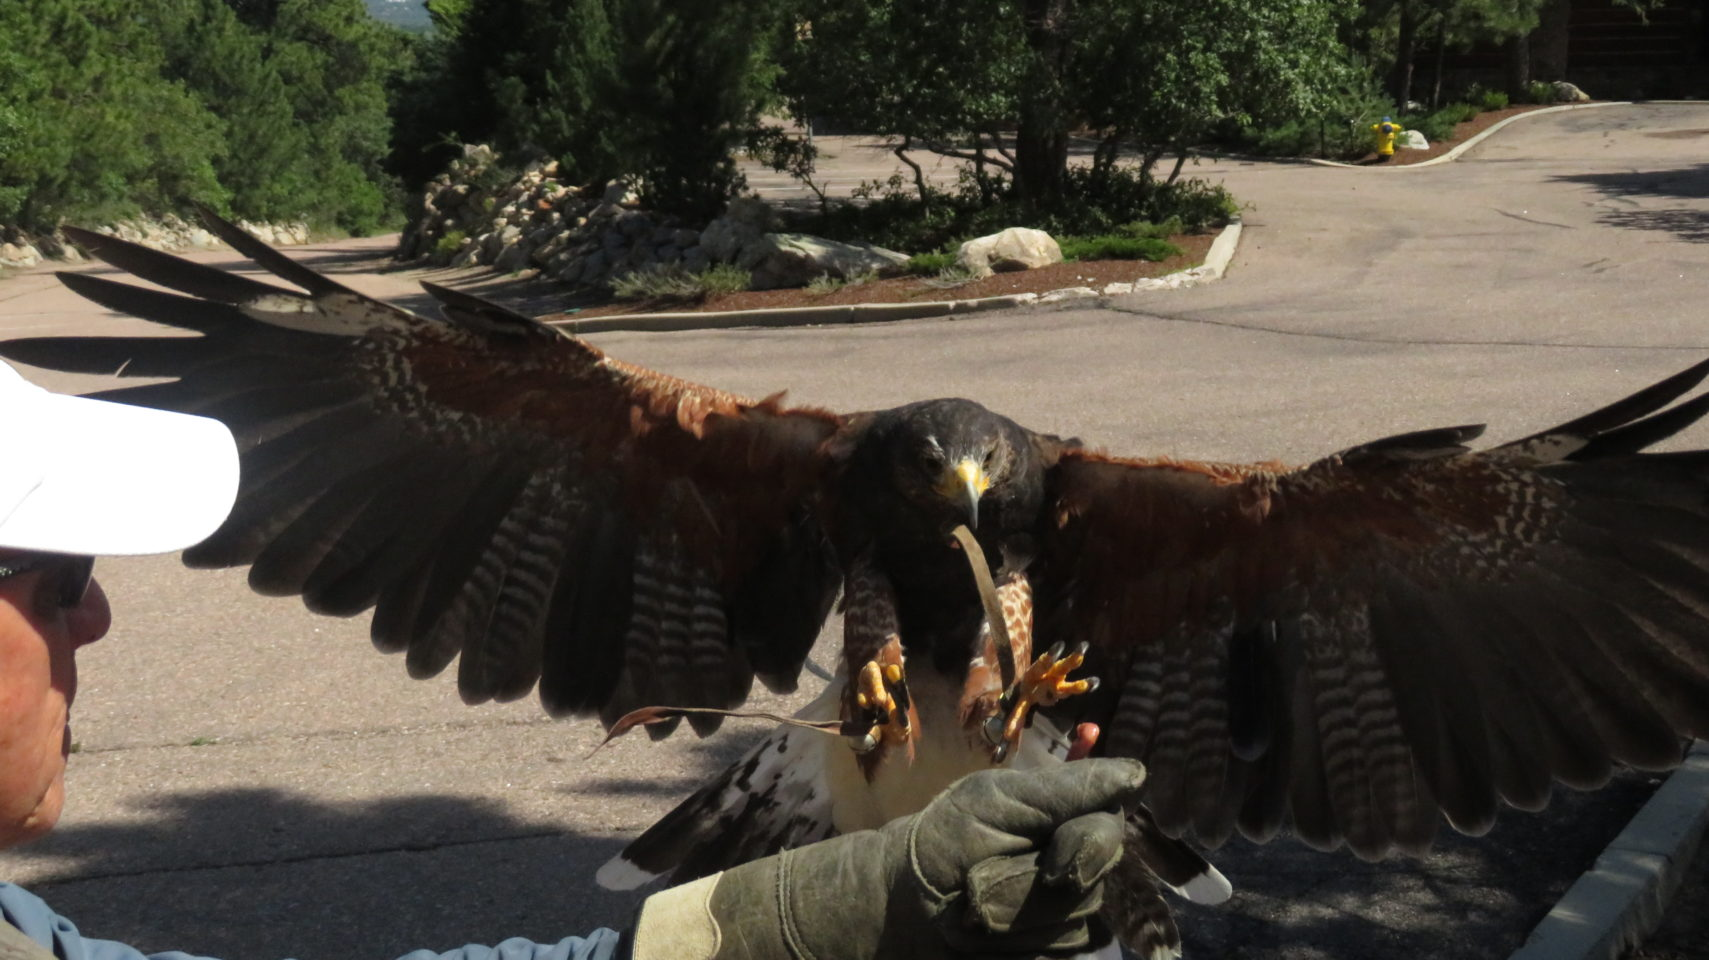 Julie, the harris hawk, in her final landing approach onto the welcoming hand of master falconer Dan